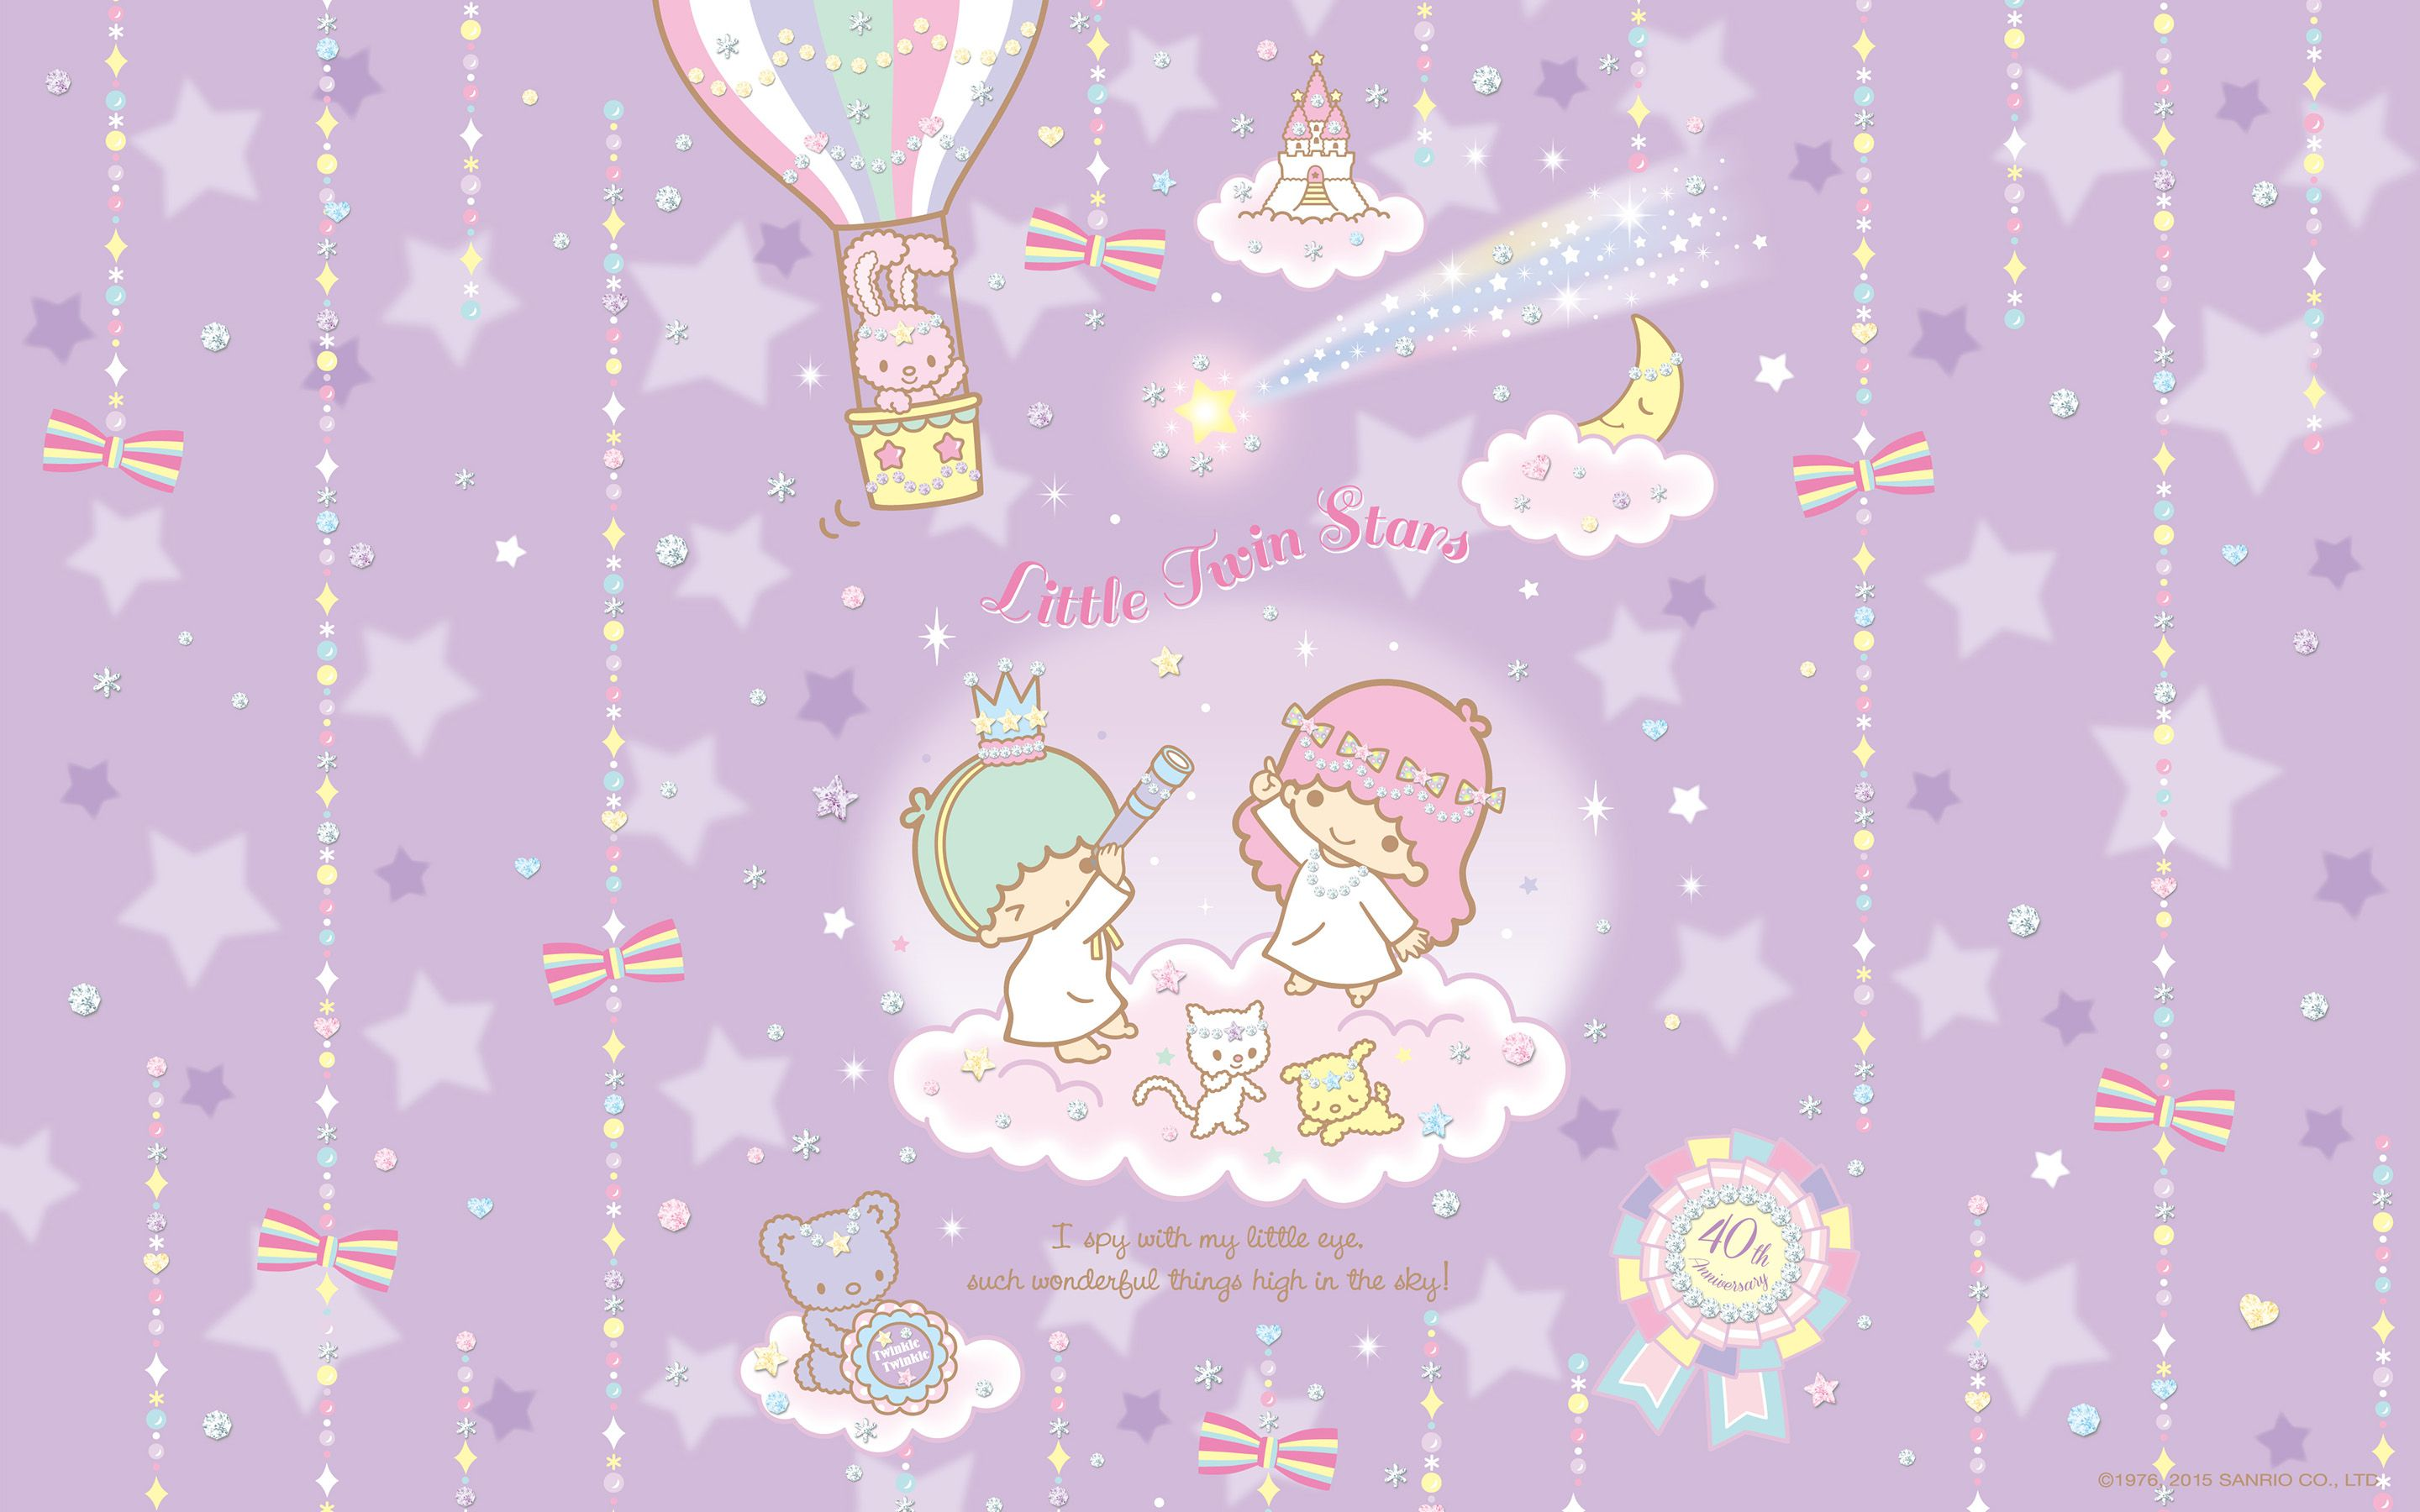 Android Iphone Pc Little Twin Stars Wallpaper 1506 六月桌布 日本草莓新聞 Sanrio Wallpaper Star Wallpaper Little Twin Stars